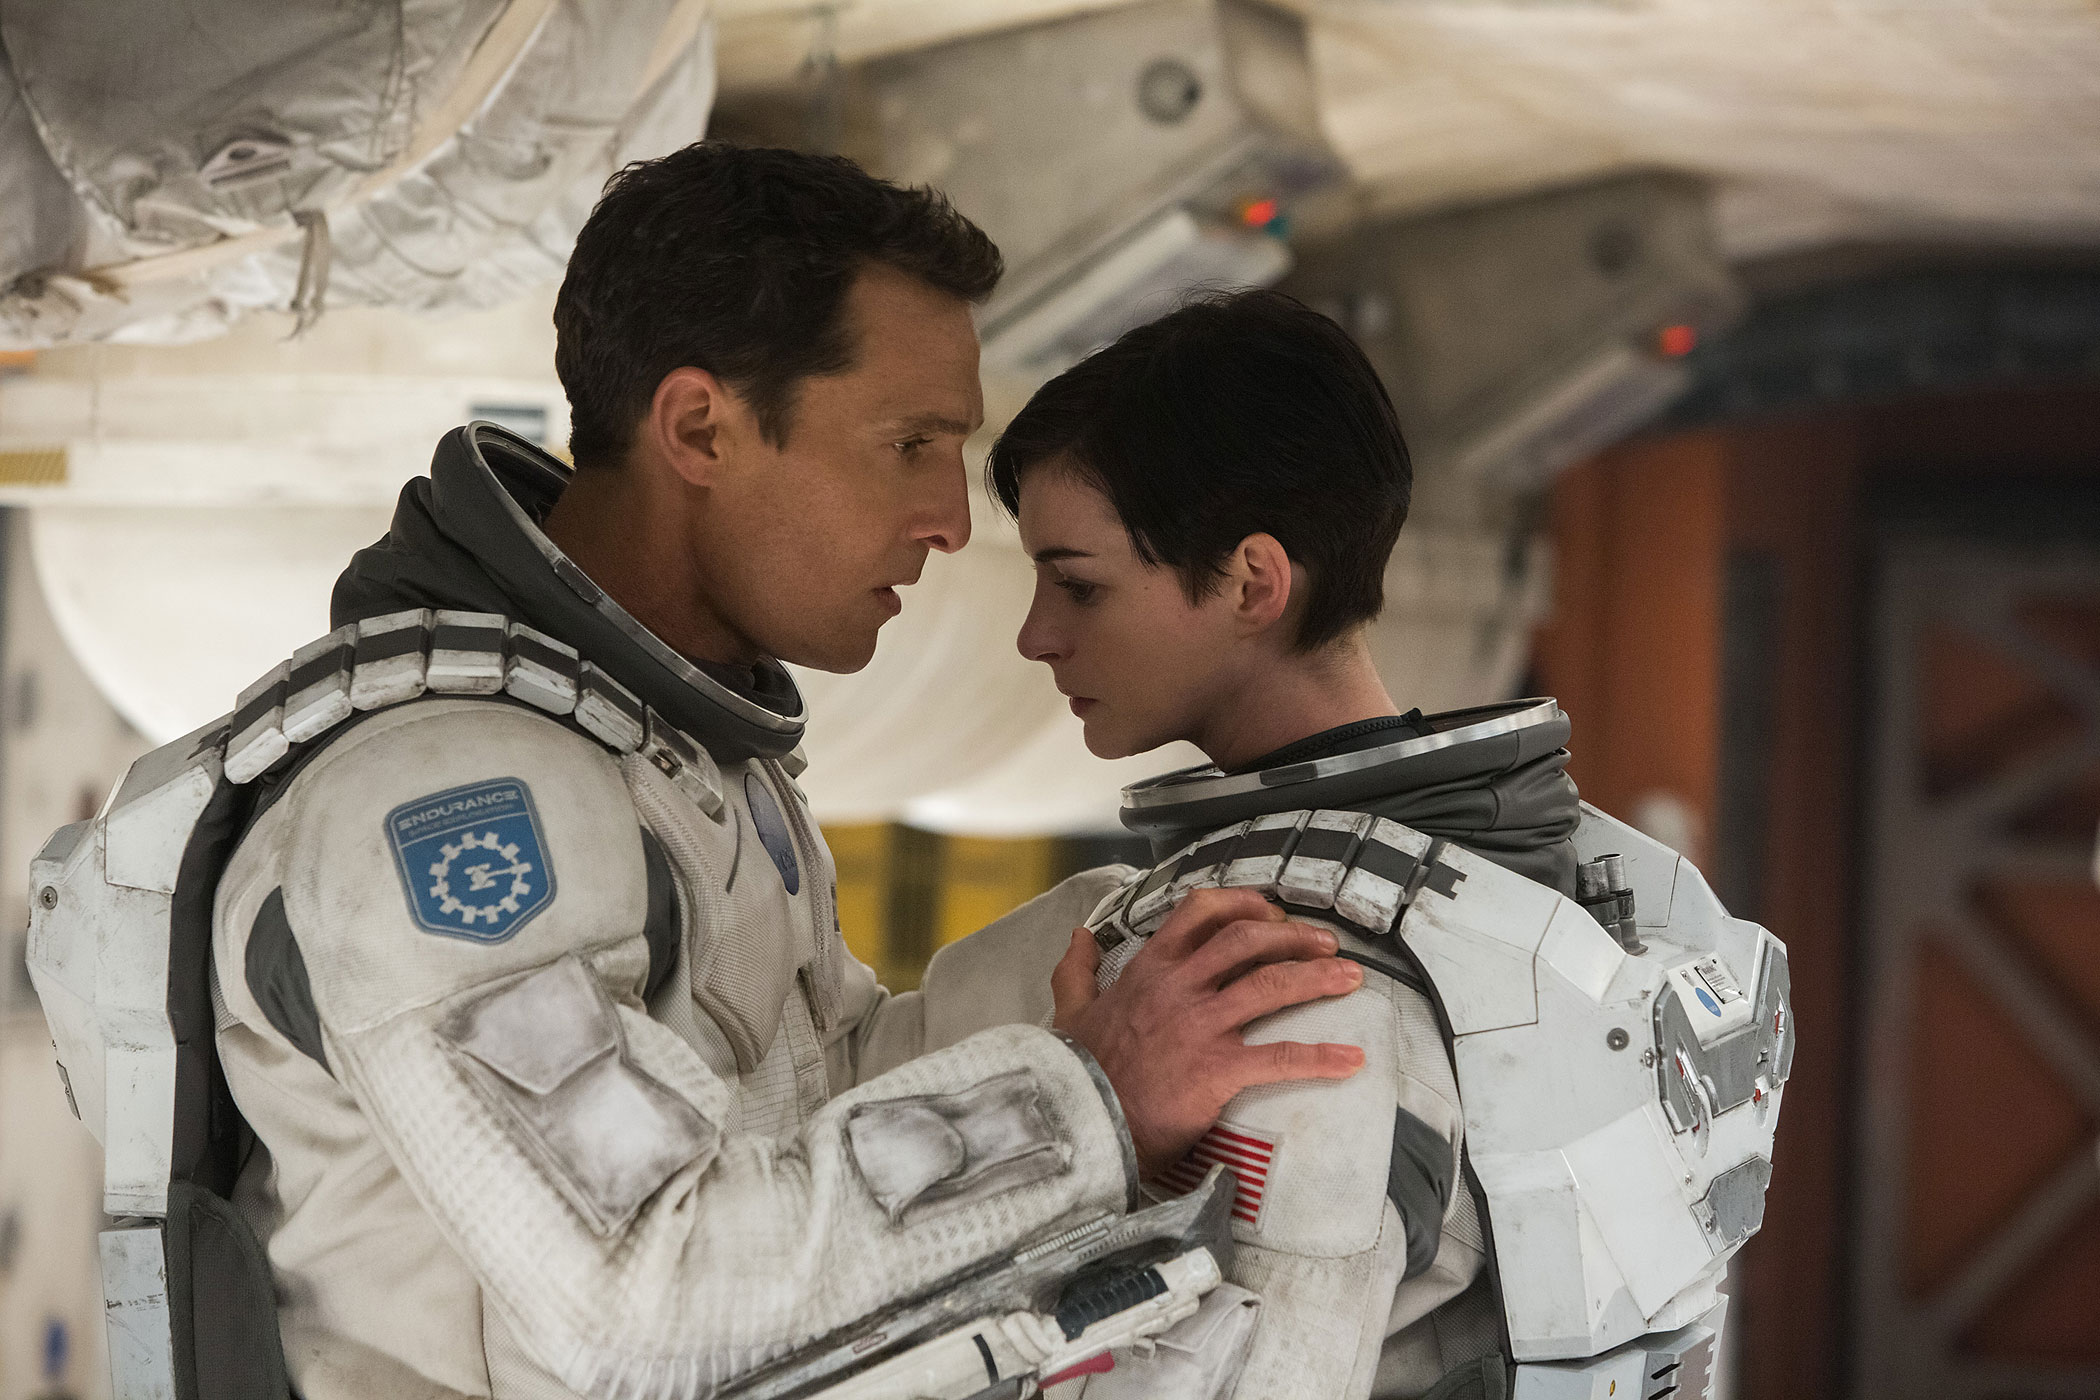 Matthew McConaughey and Anne Hathaway in a scene from <i>Interstellar</i>.